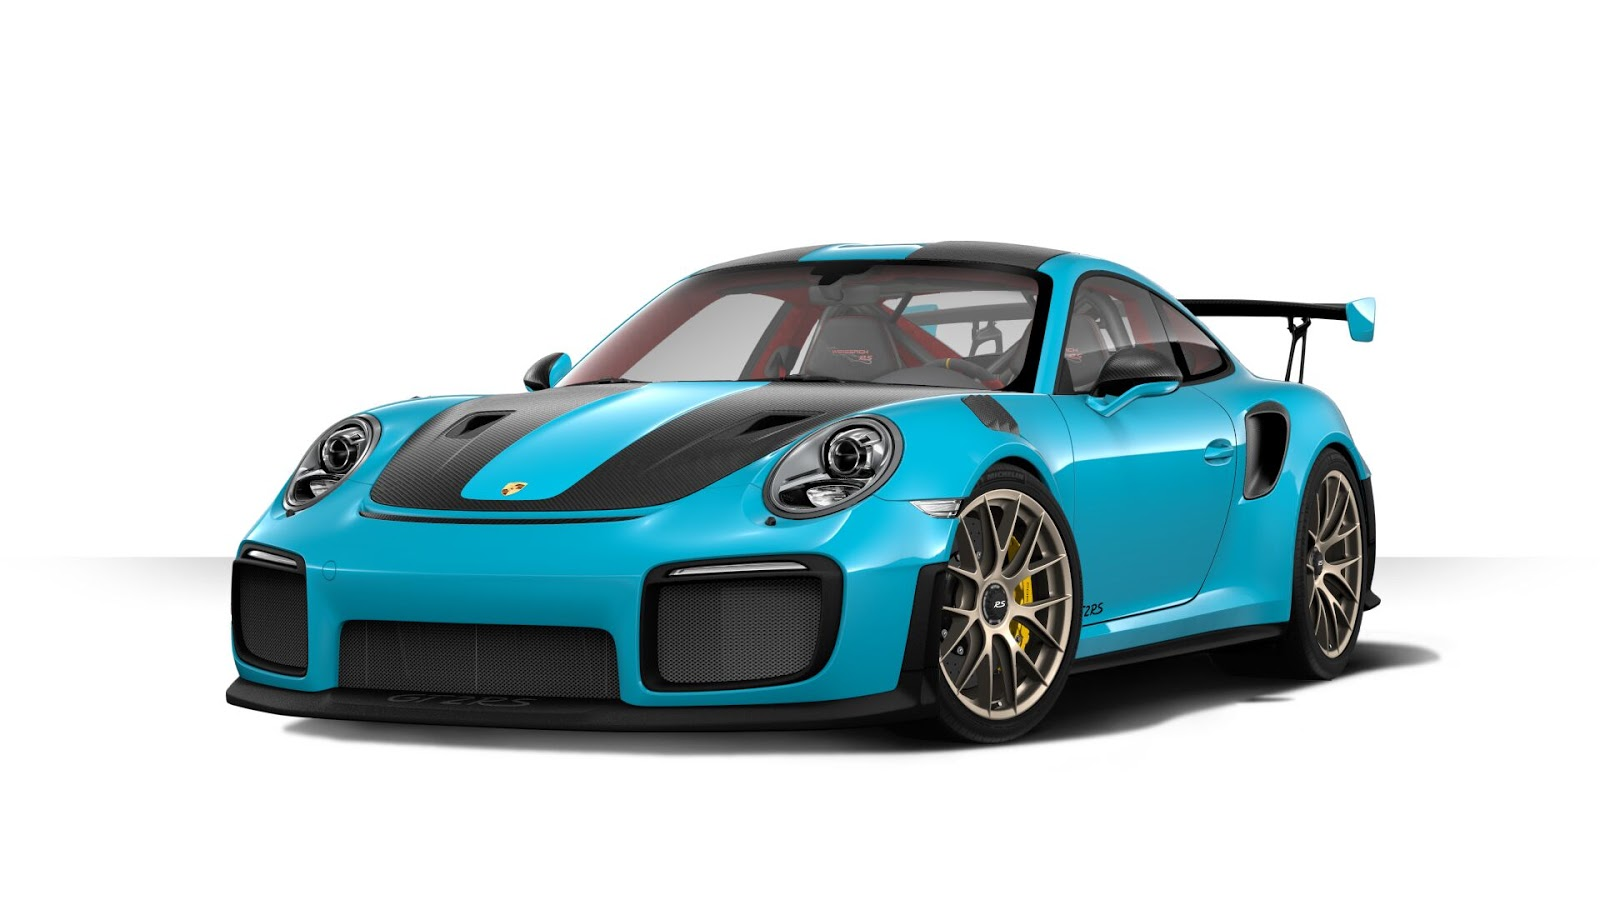 porsche 911 gt2 rs configurator lets you design your final widowmaker. Black Bedroom Furniture Sets. Home Design Ideas